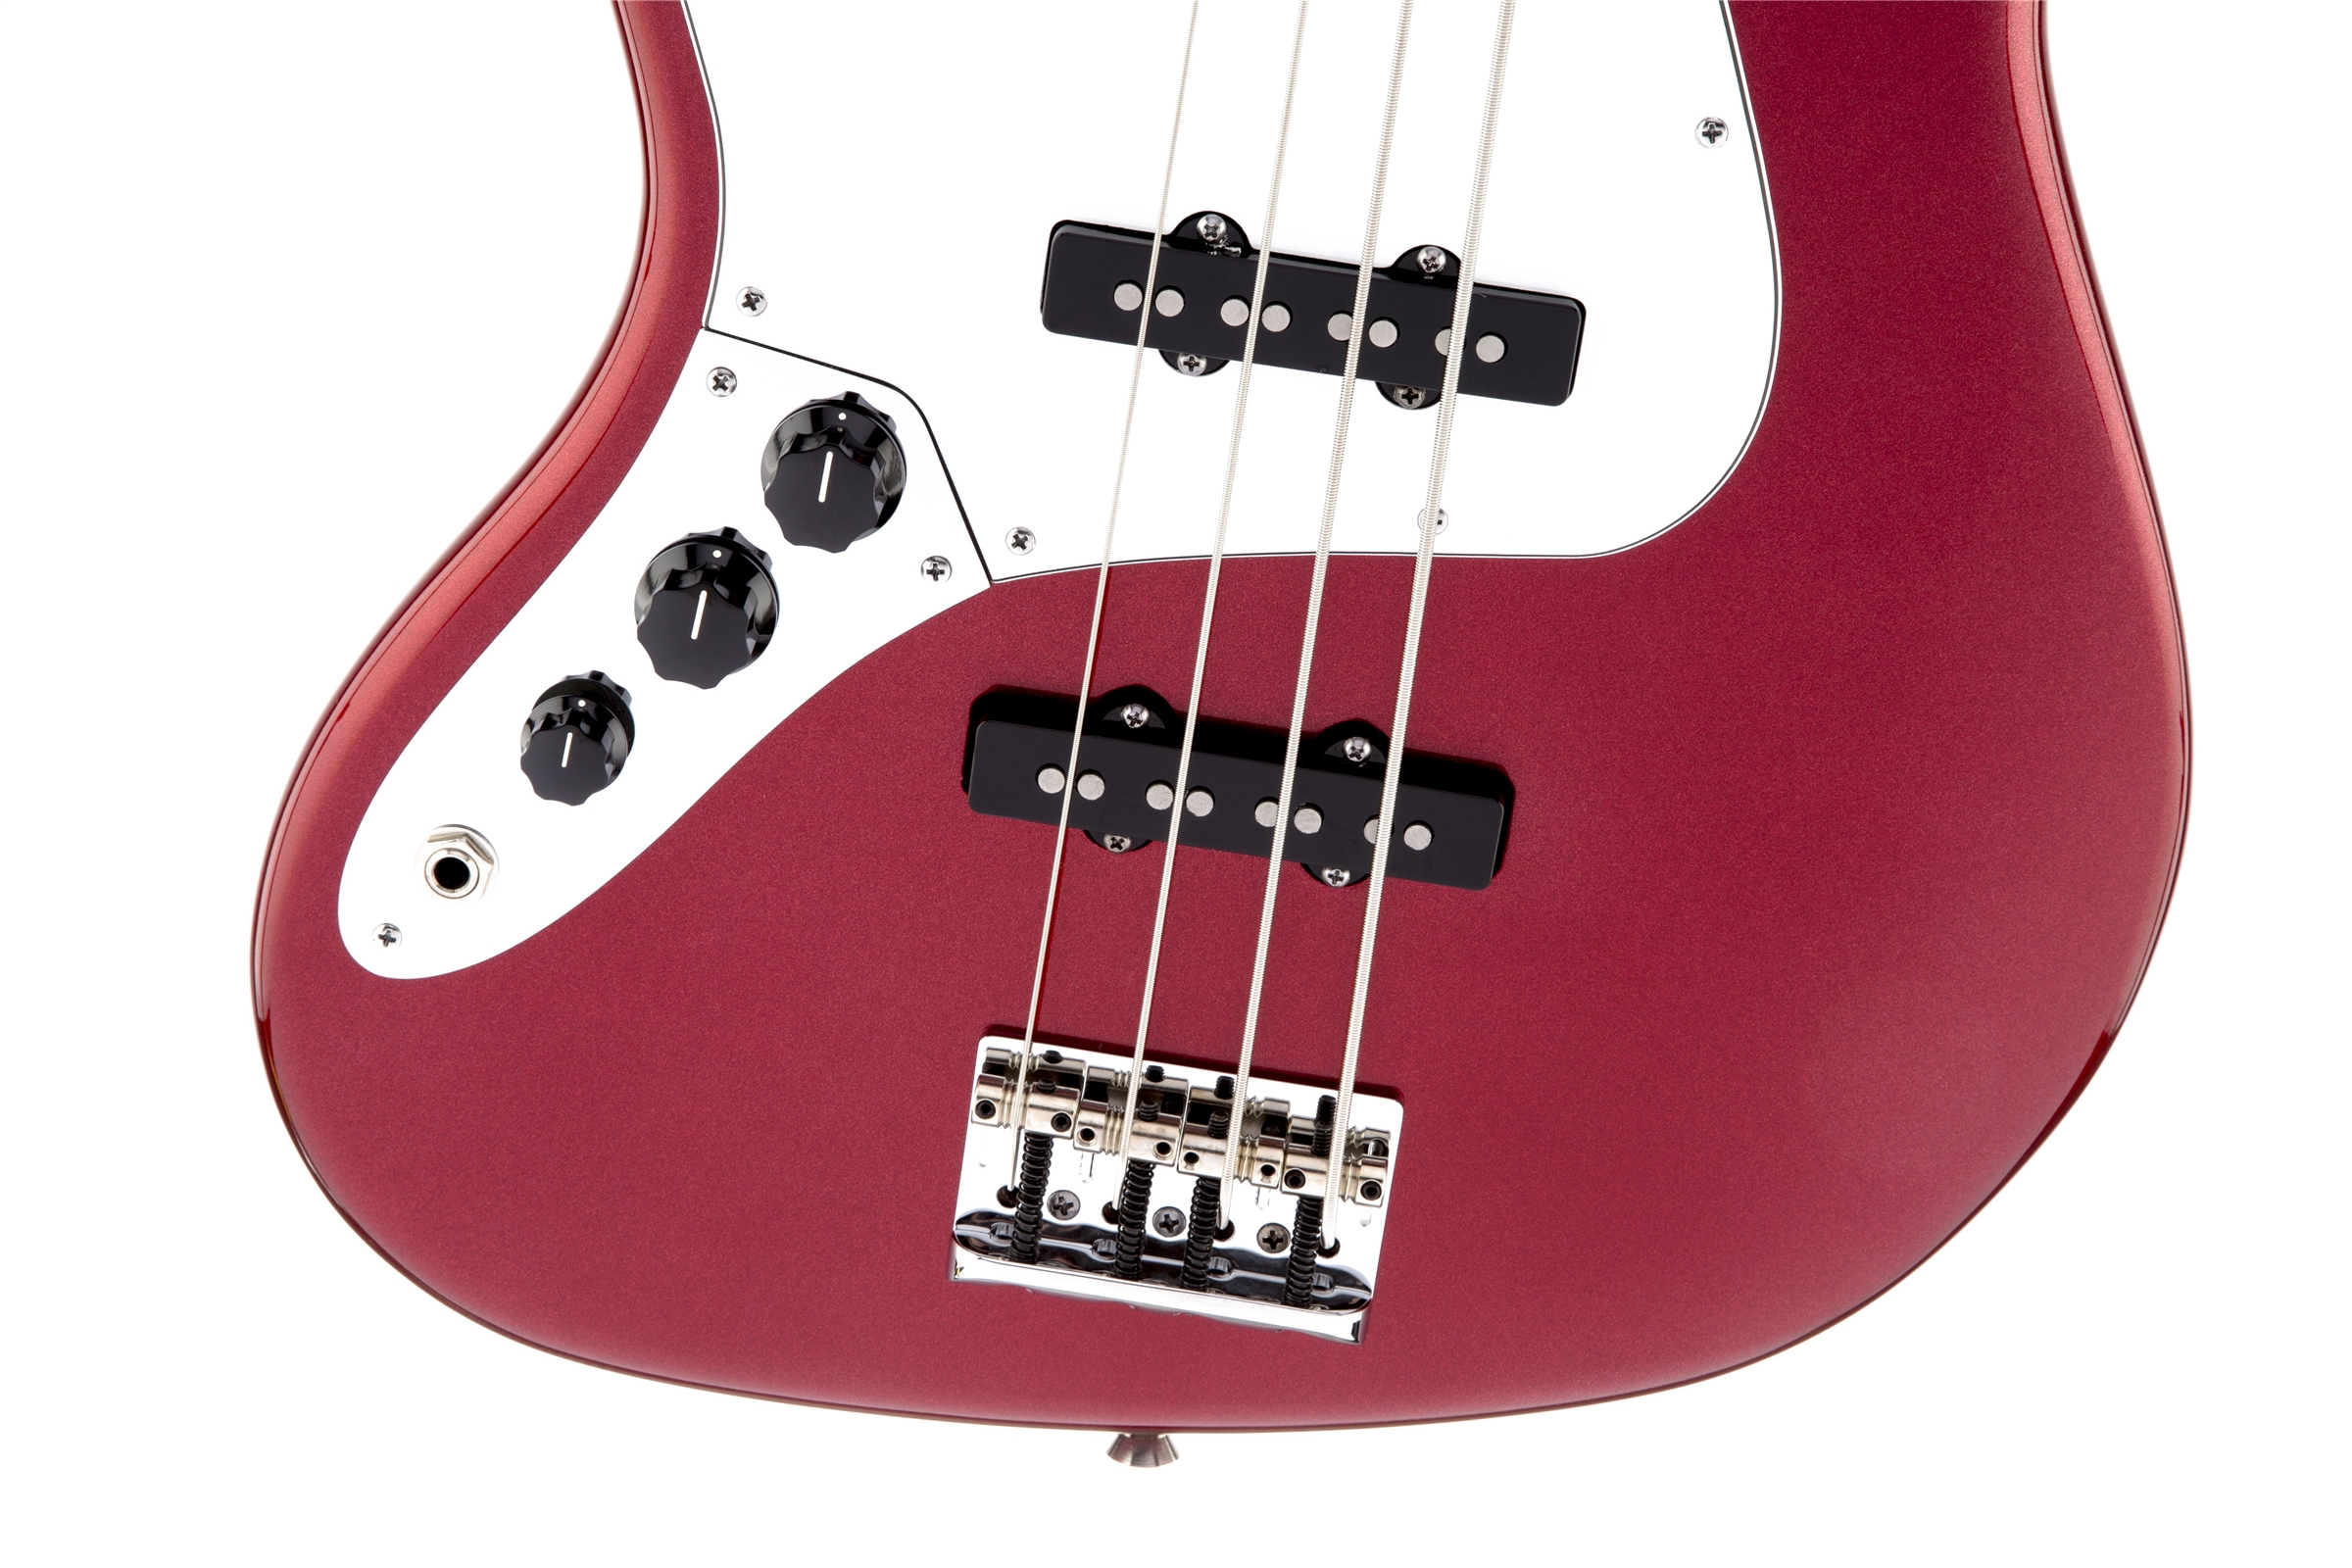 Fender American Standard Jazz Bass® Left-Hand Mystic Red Rosewood Fingerboard Electric Bass Guitar